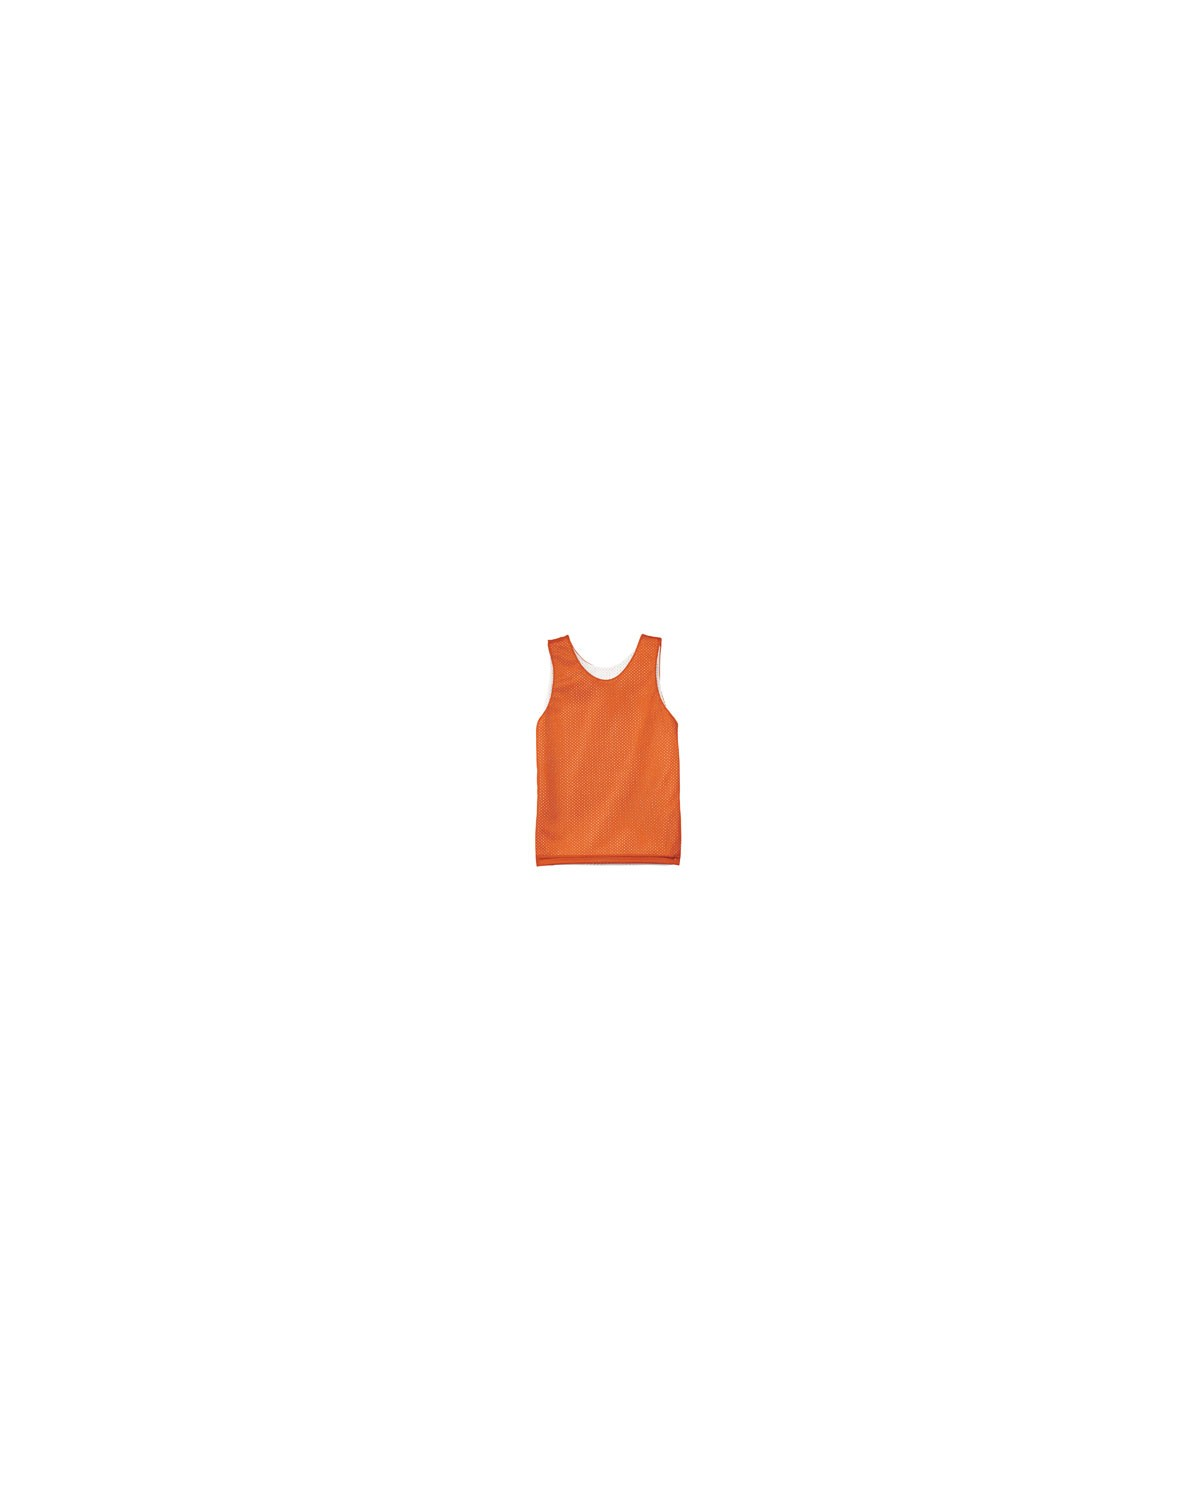 N2206 A4 Apparel ORANGE/WHITE